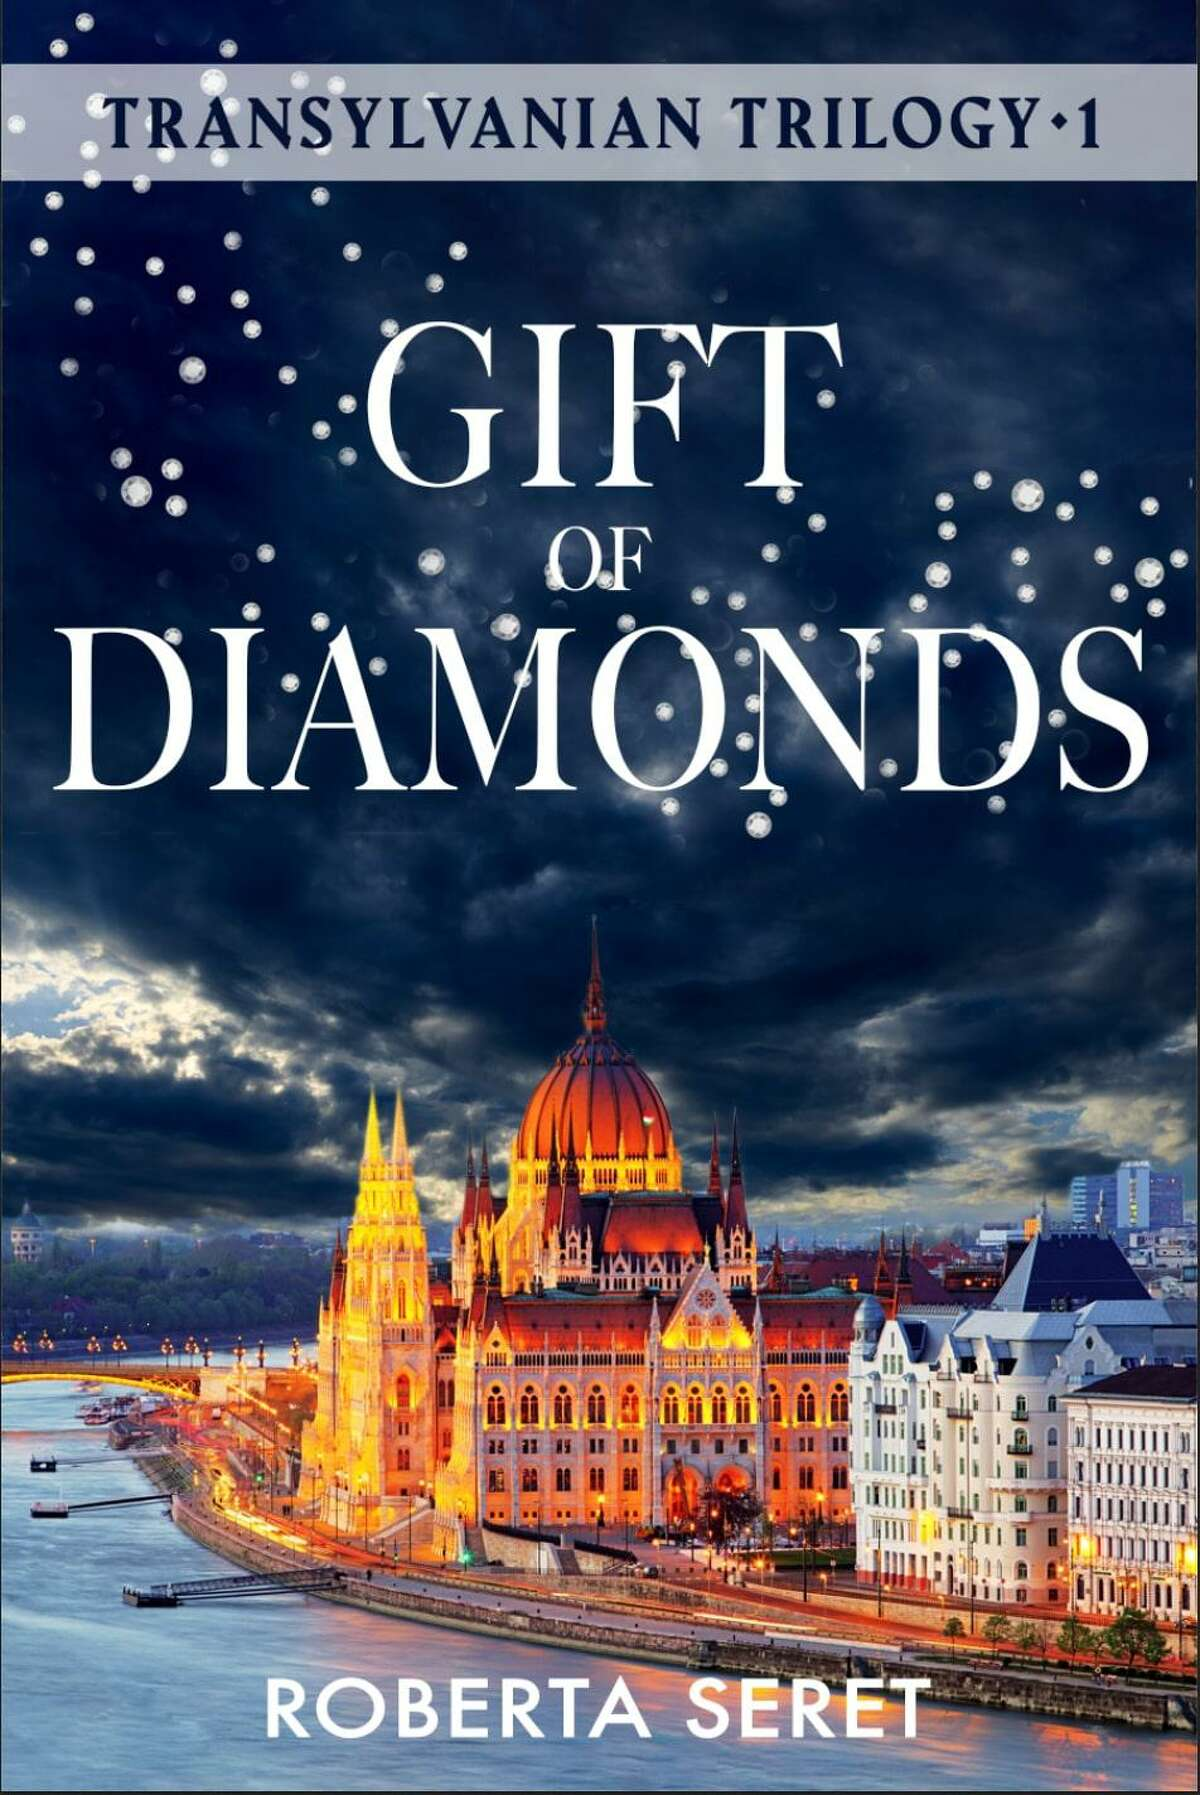 """Roberta Seret, an author from Westport, has penned a new historical fiction novel, """"Gift of Diamonds"""" about a 1990 revolution in Bucharest, Romania. The book is the first in the Transylvania Trilogy."""""""